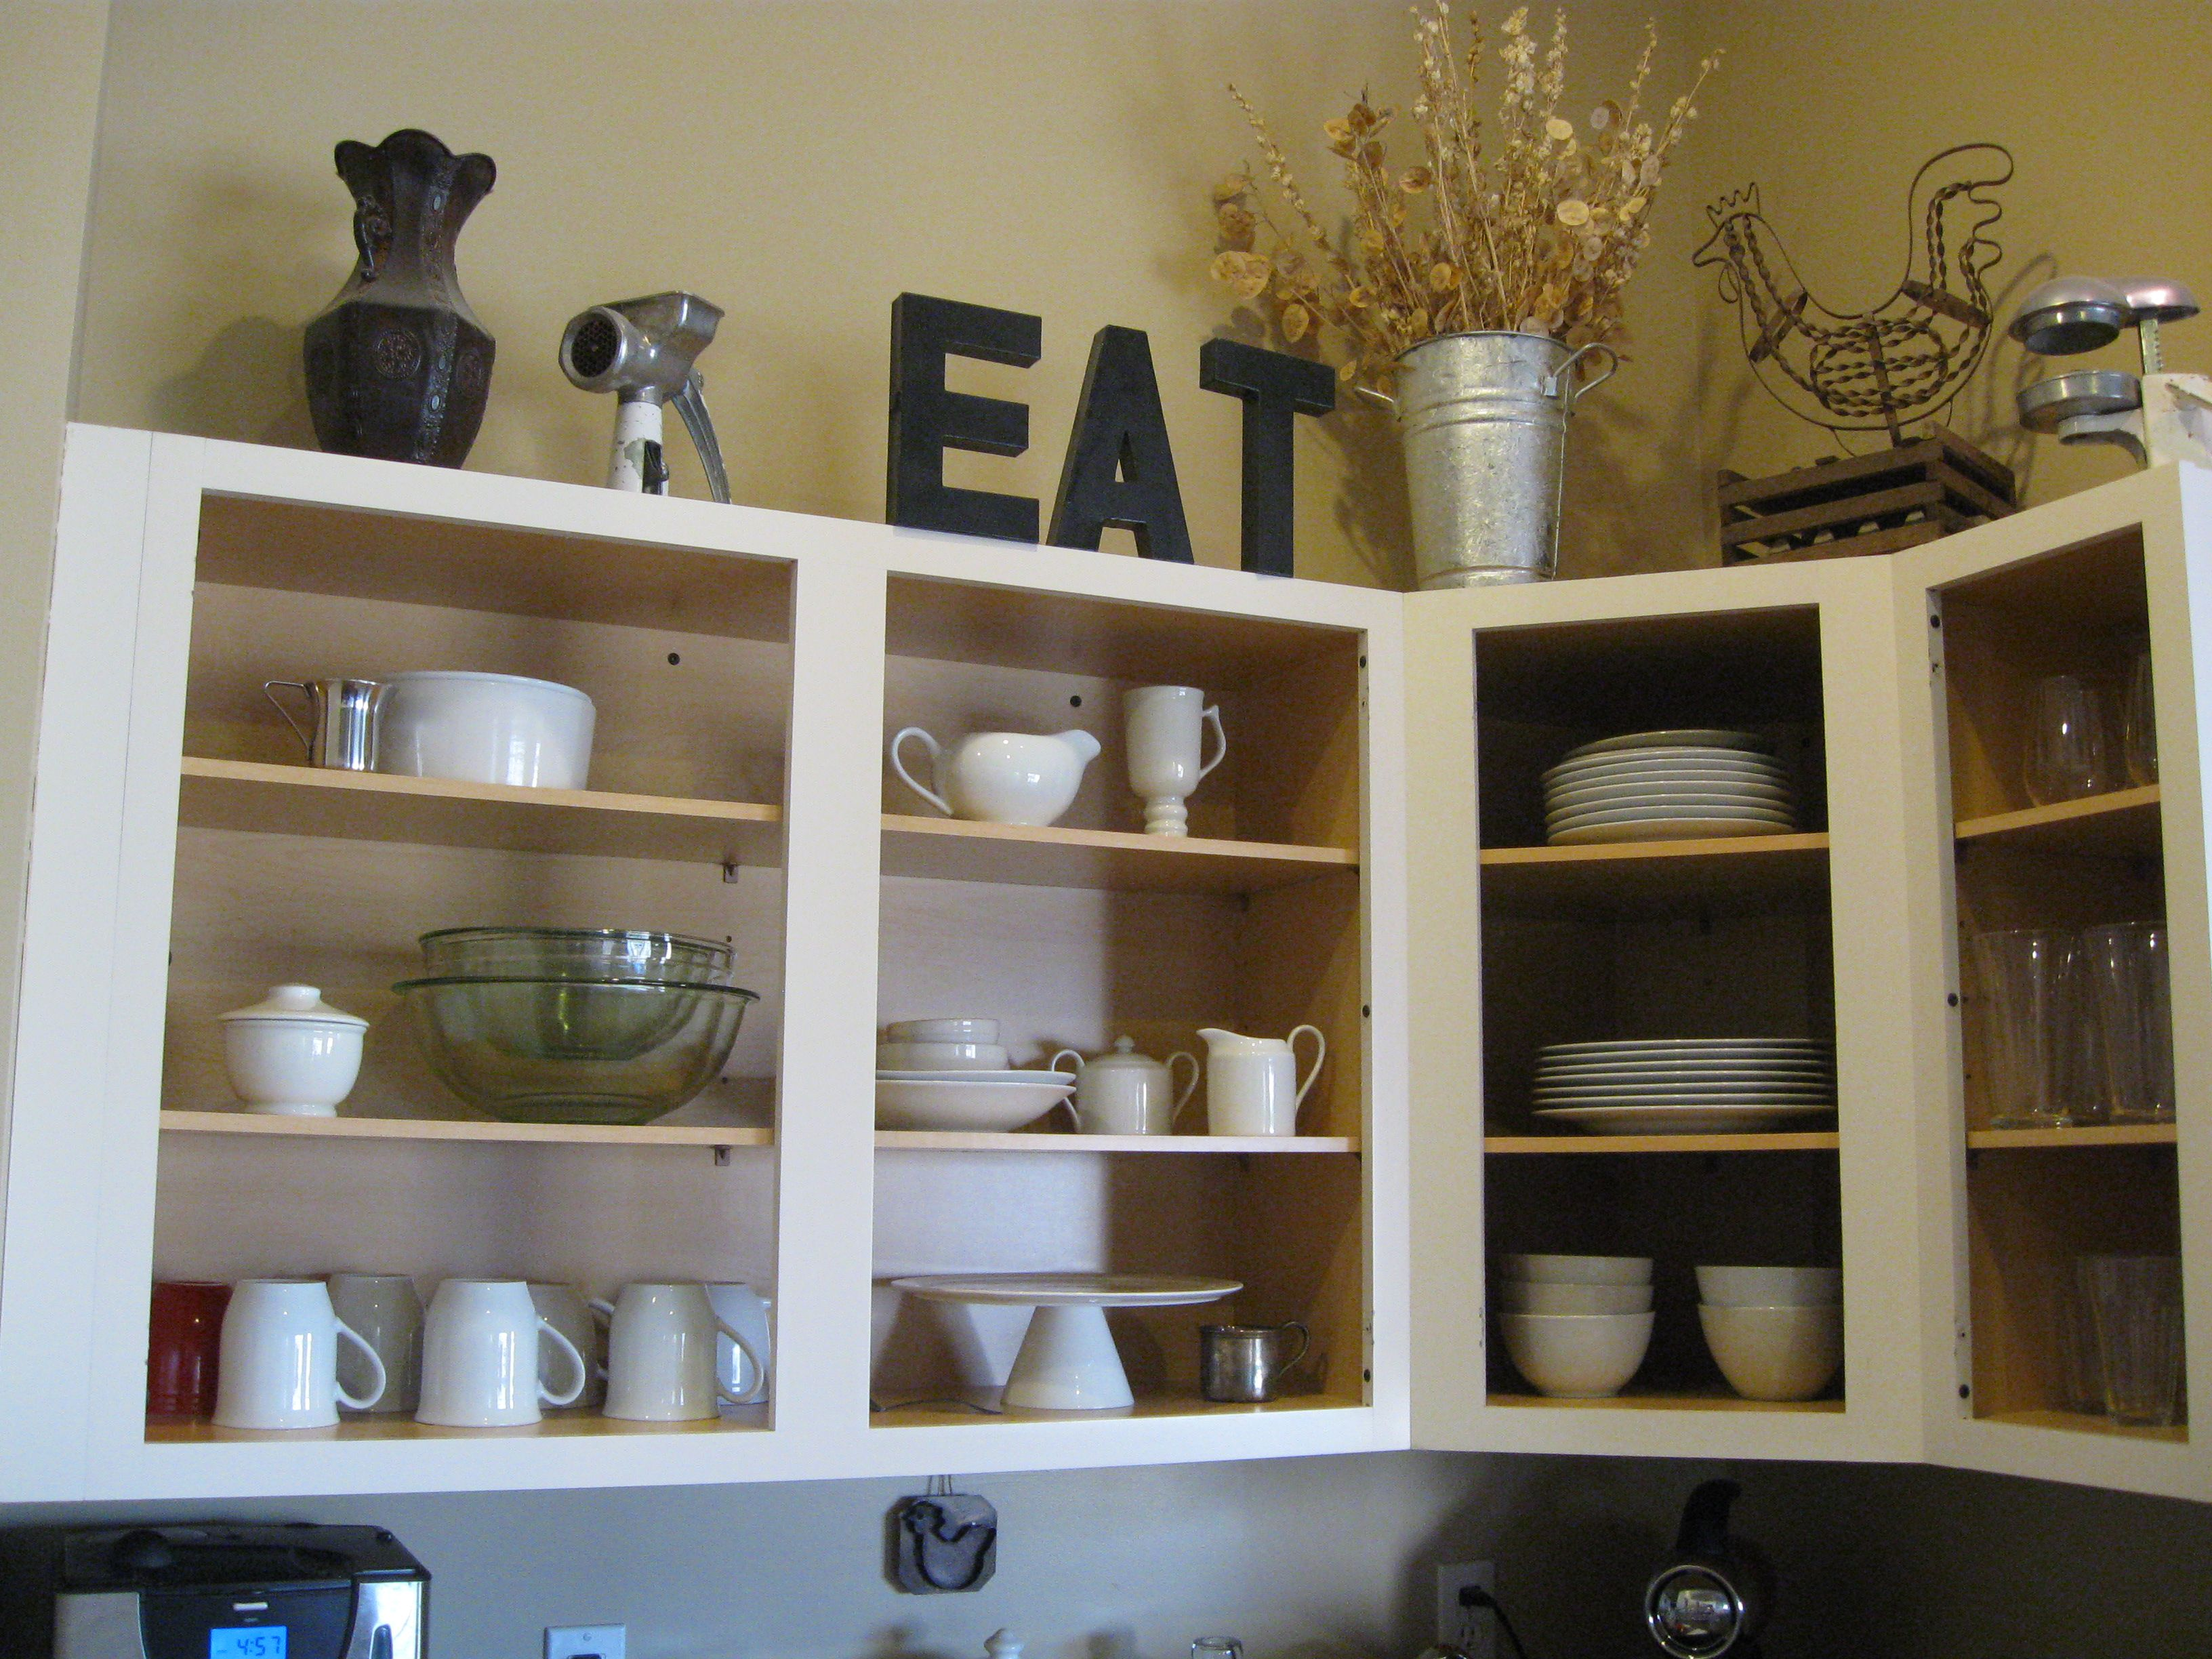 Google Image Result For Http Www Norbandys Com Entity No Door Kitchen Cabine Open Shelving Kitchen Cabinets Open Kitchen Cabinets Unfinished Kitchen Cabinets